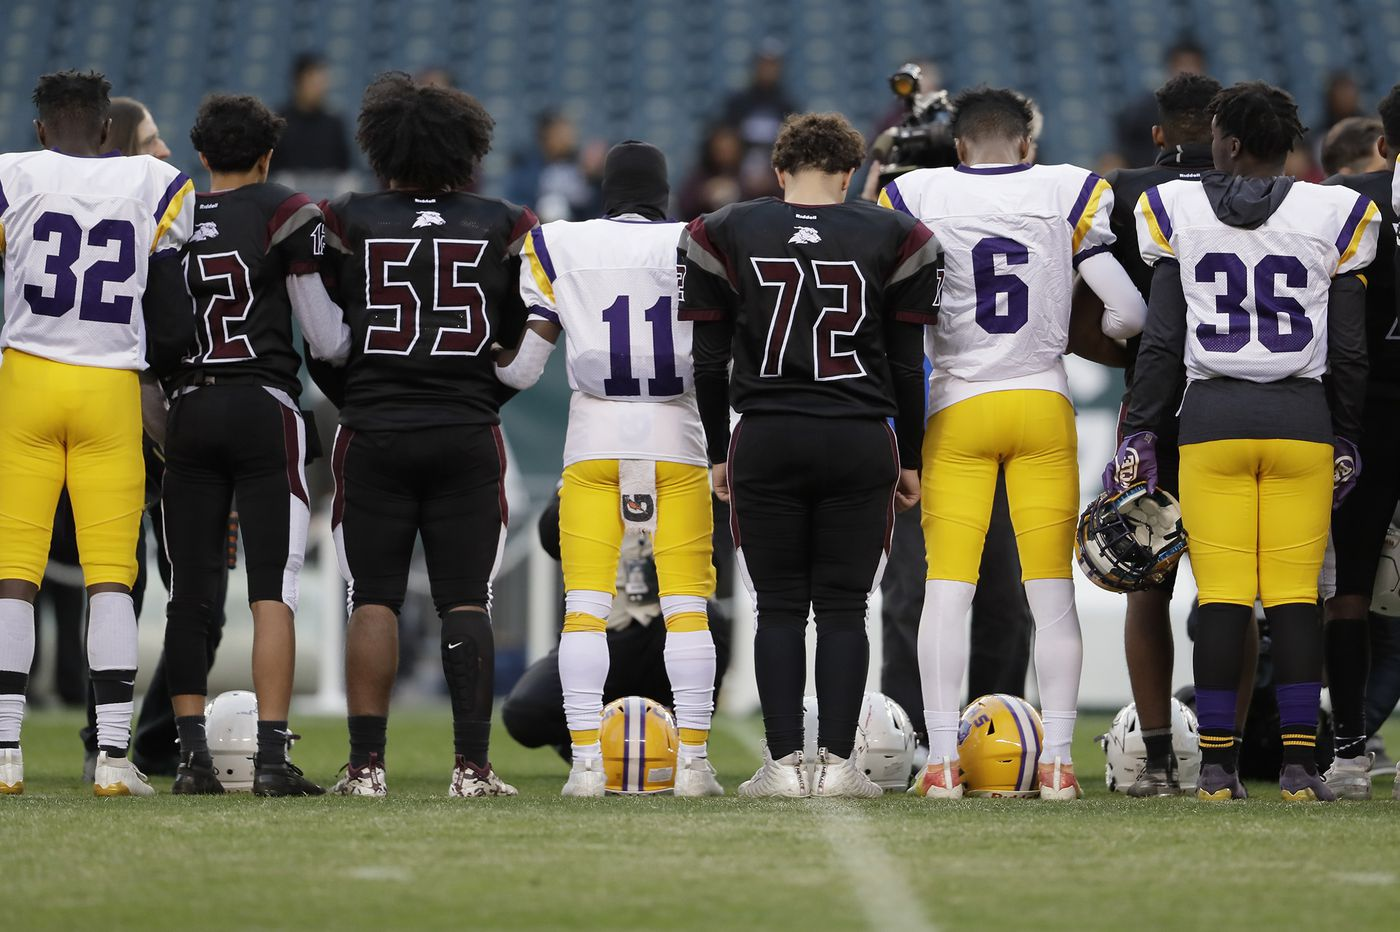 Hours after 10-year-old victim dies, South Jersey teams play at the Linc to finish game interrupted by shooting